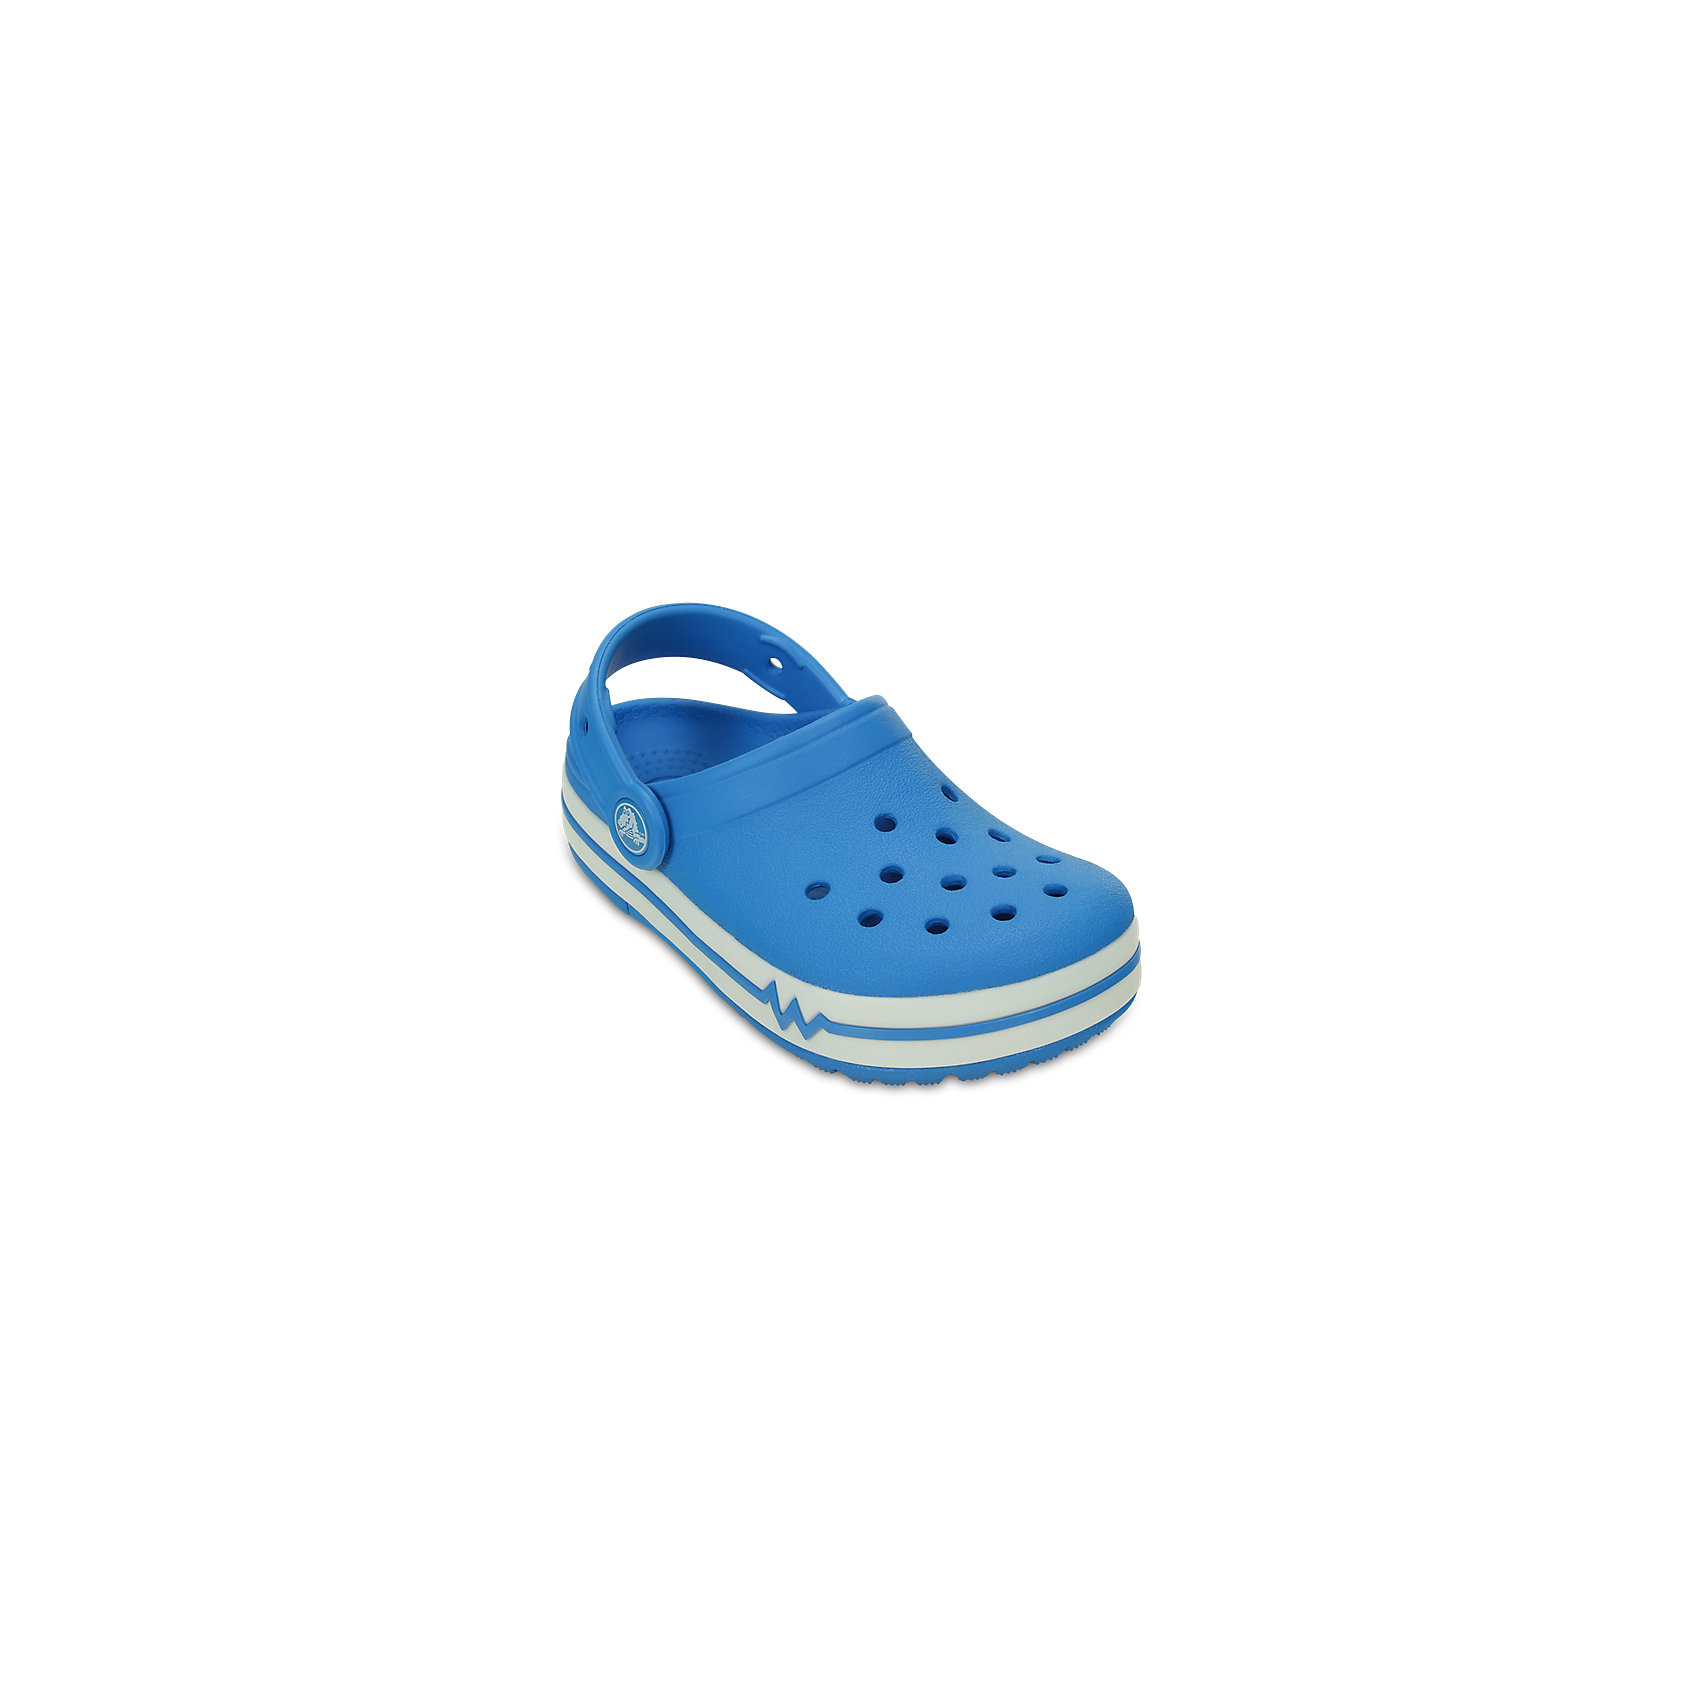 crocs Сабо со светодиодами Lights Clog PS для мальчикаCrocs  crocs crocslights butterfly ps clog toddler little kid